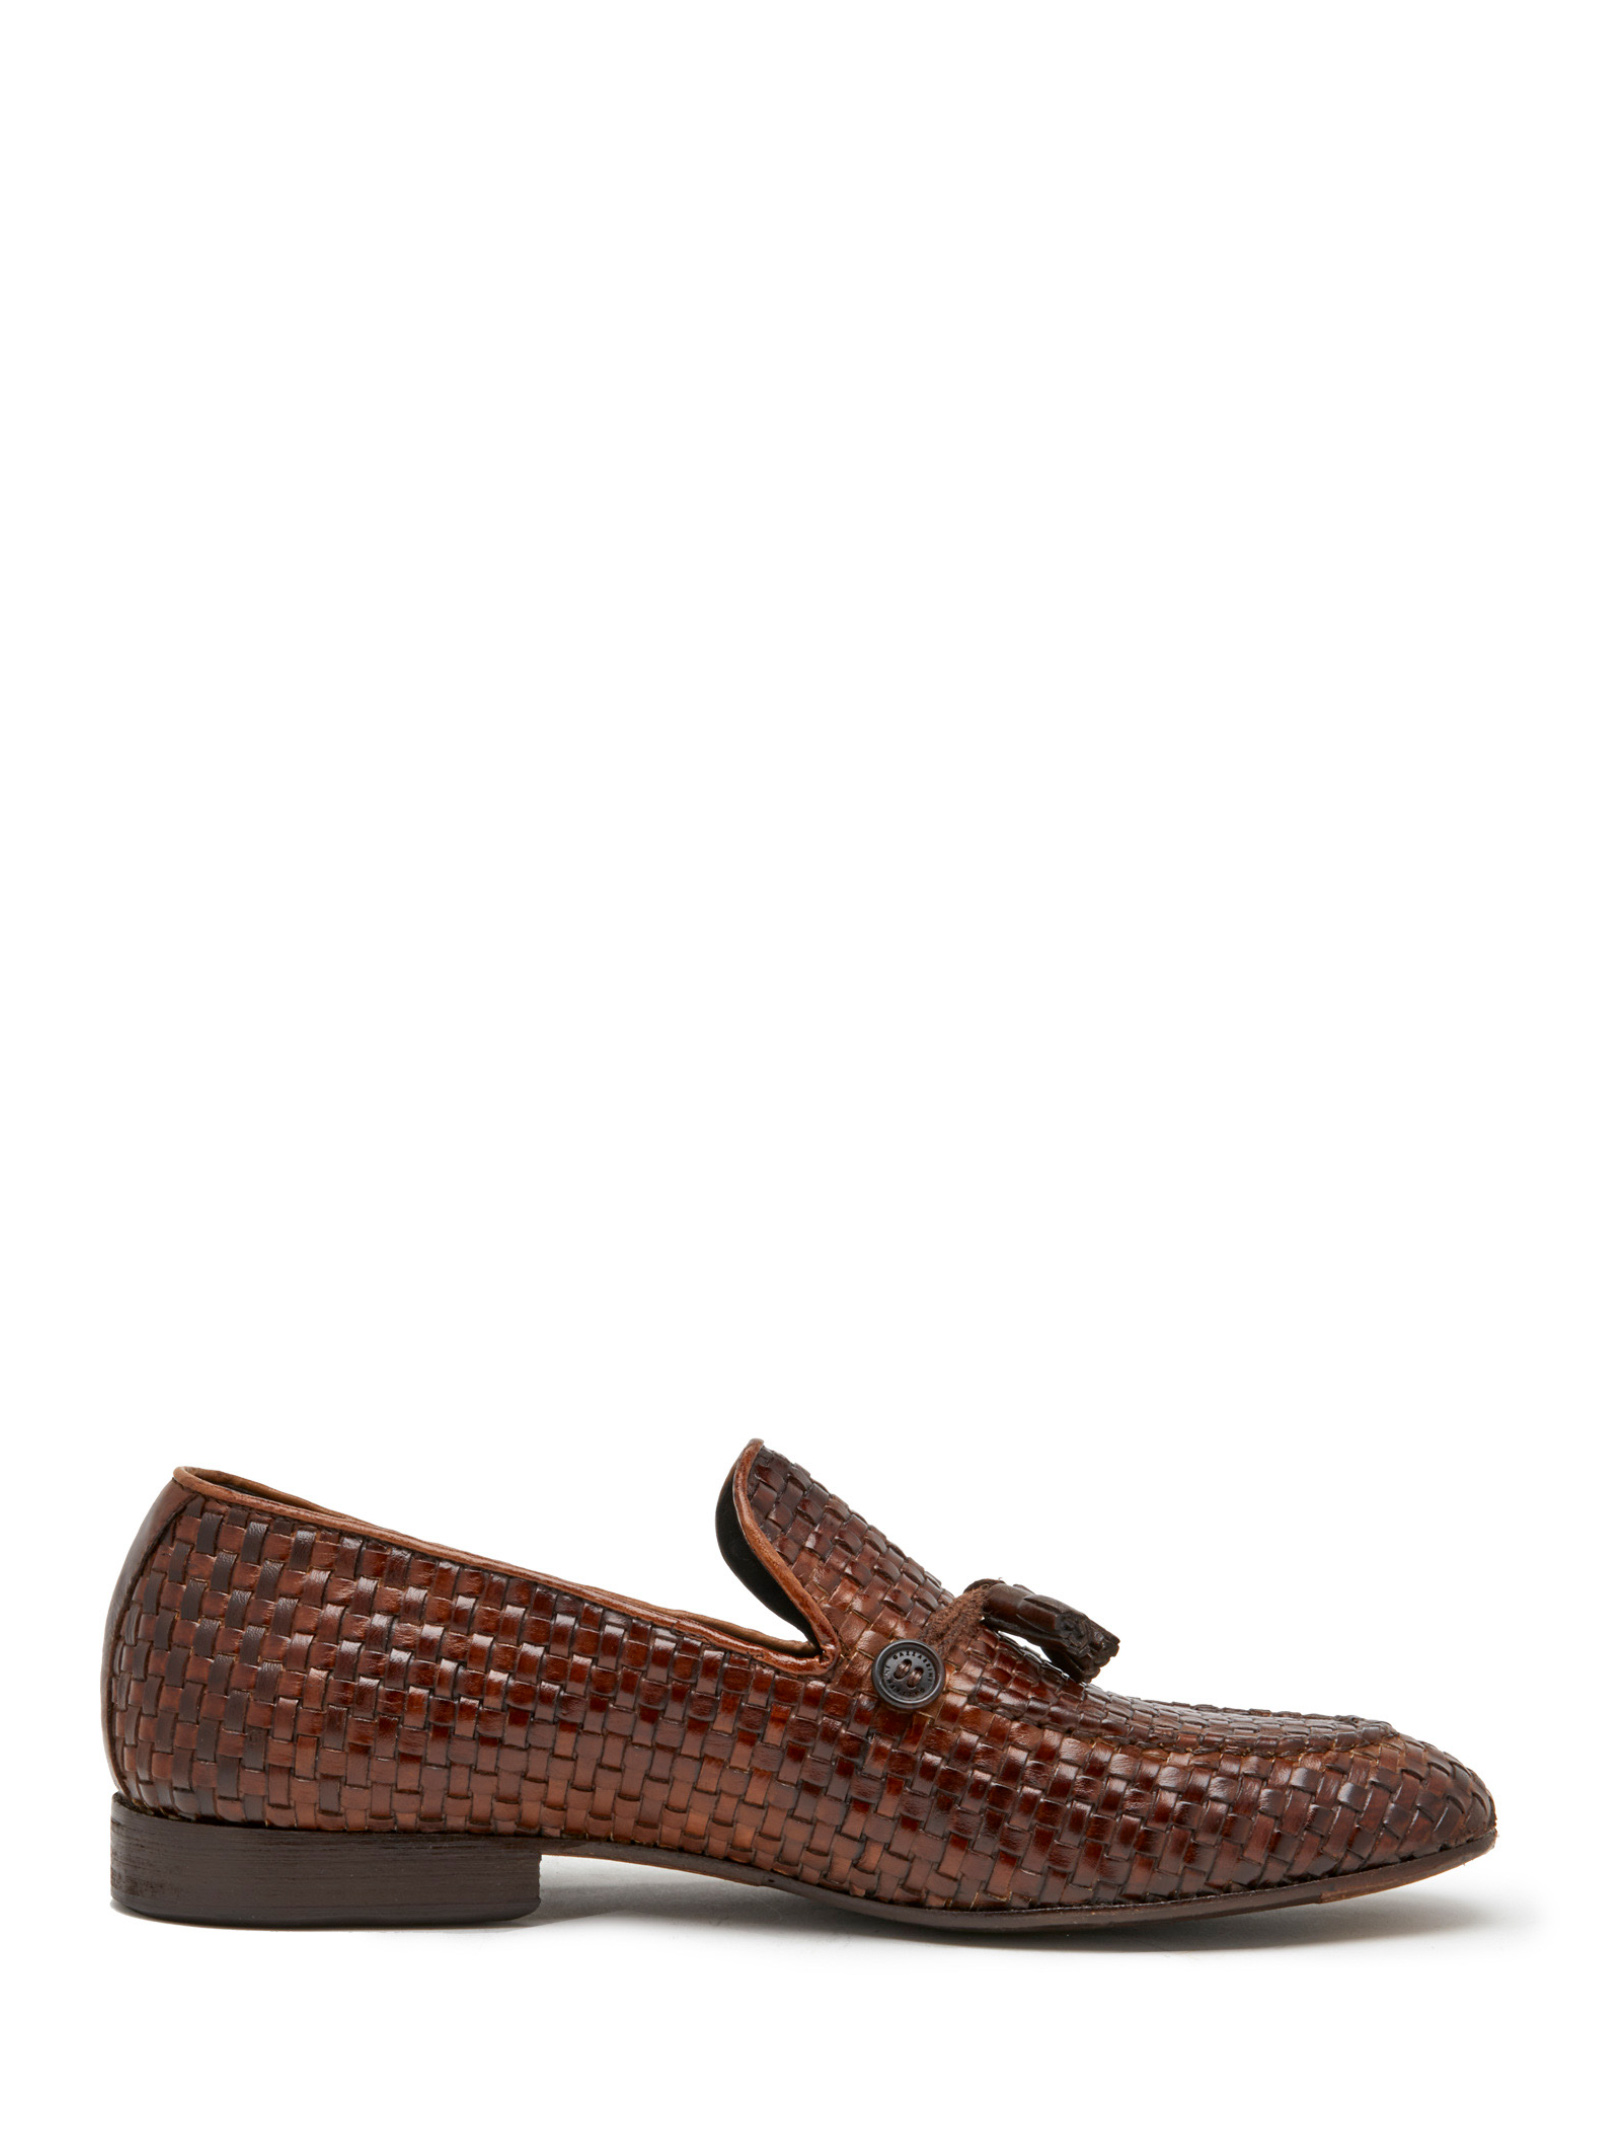 Gazzarrini loafers